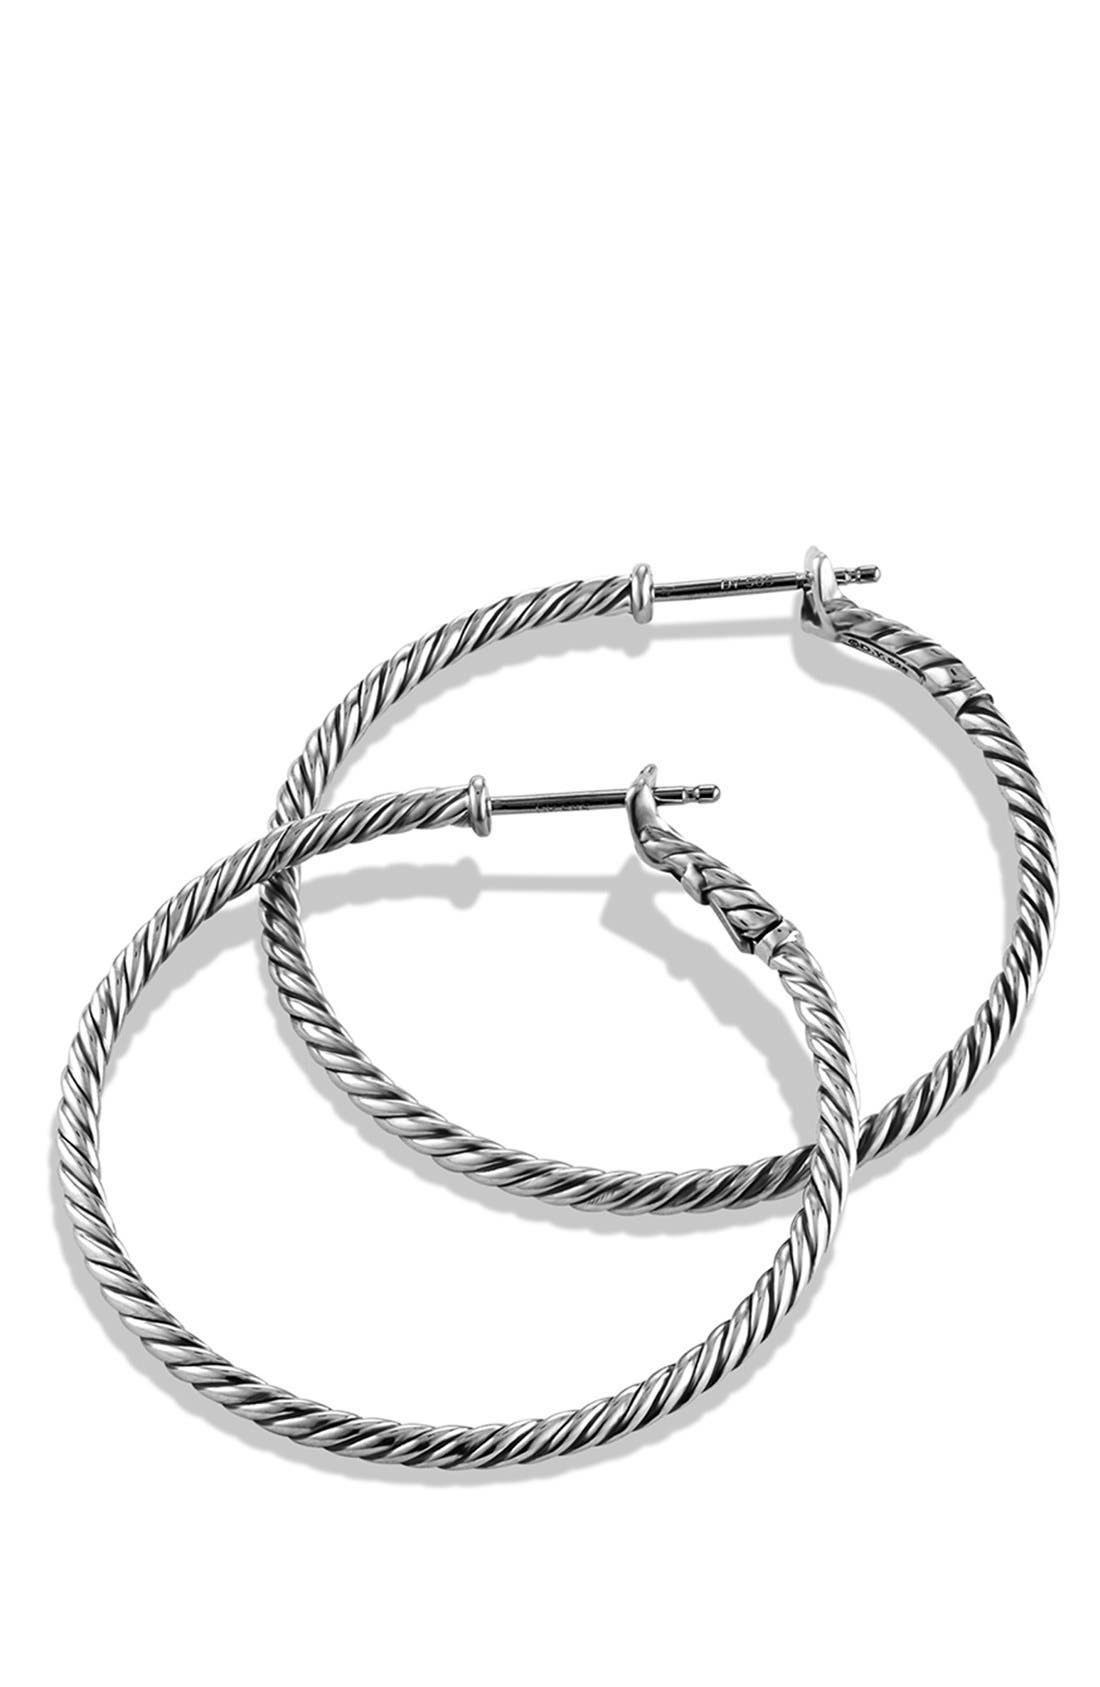 Cable Classics Hoop Earrings,                             Alternate thumbnail 2, color,                             SILVER